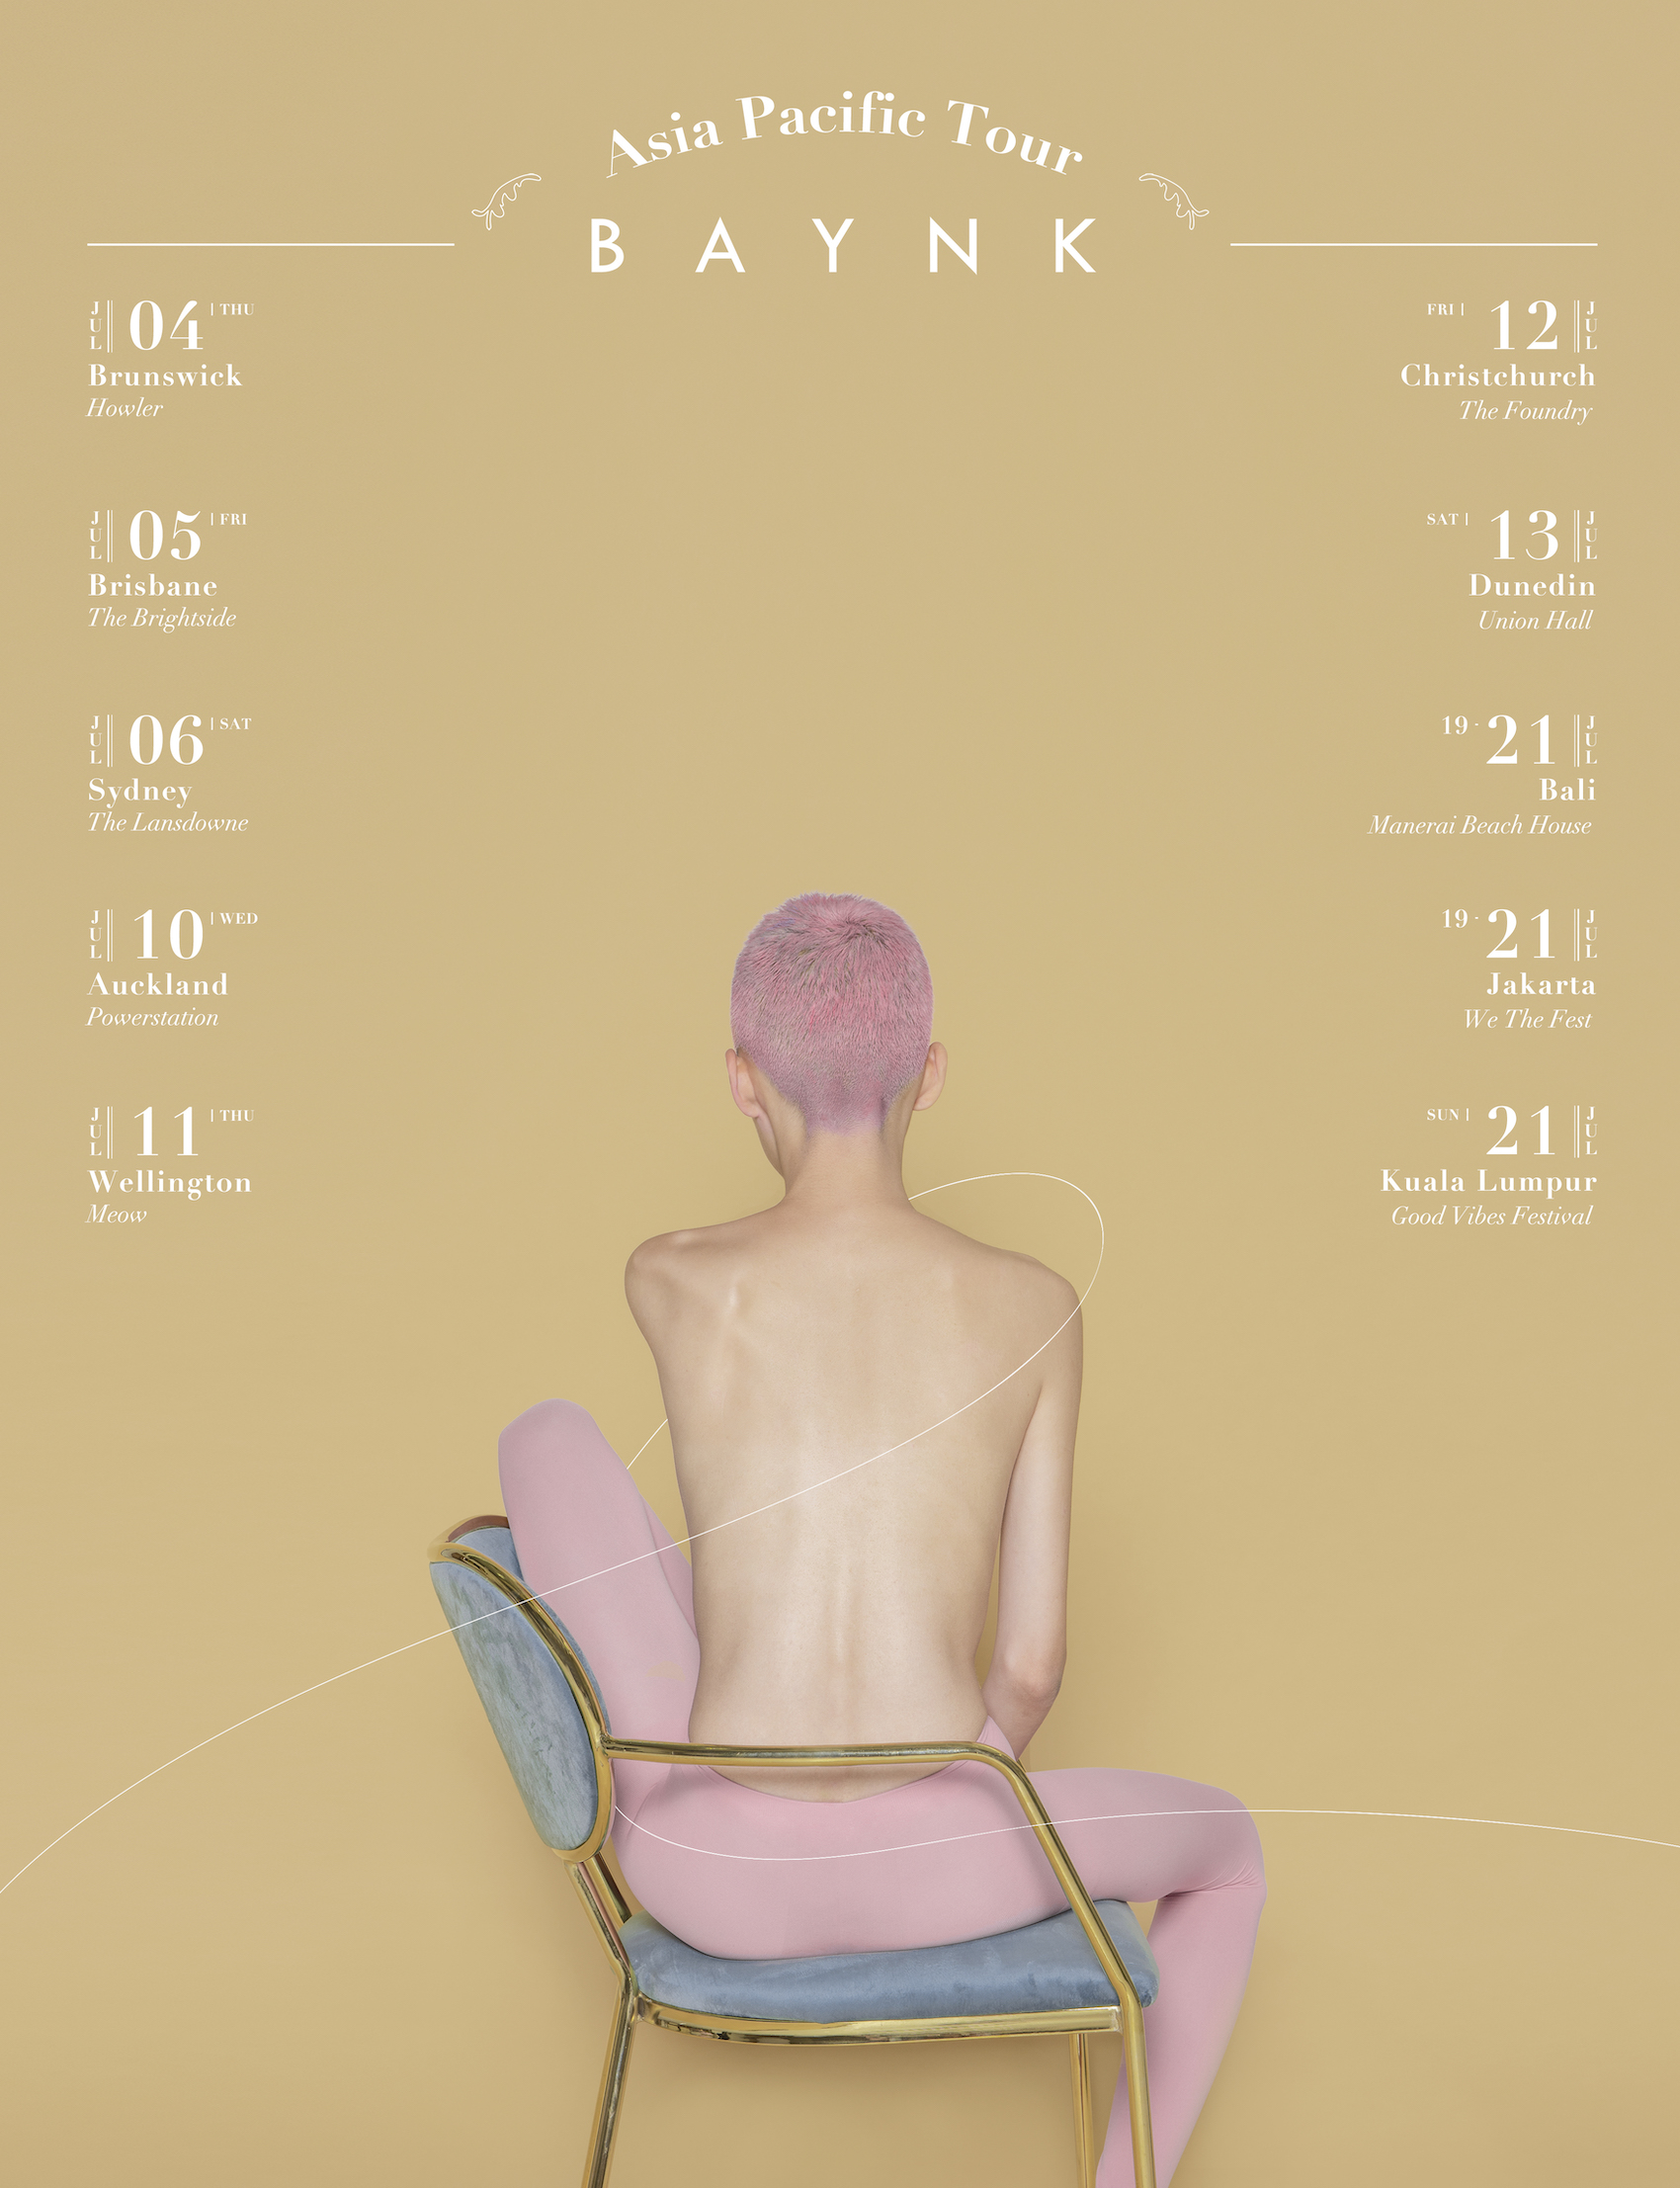 BAYNK 2019 Asia Pacific Tour - NATIONAL POSTER (1) (1).jpg